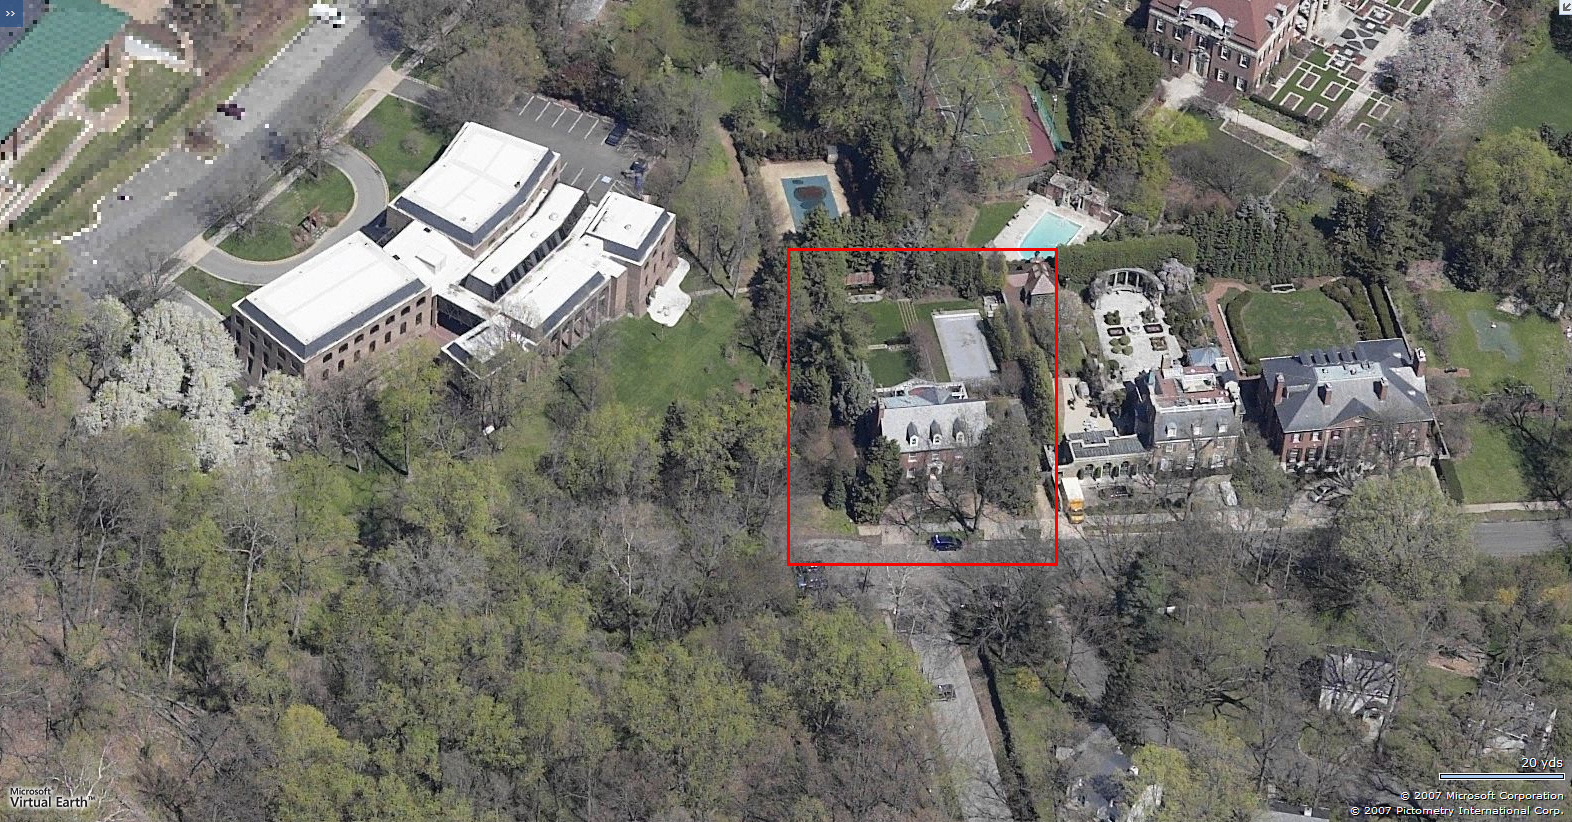 Genial Clinton DC Residence. Birdseye. Looking North Before Poolhouse Was Built